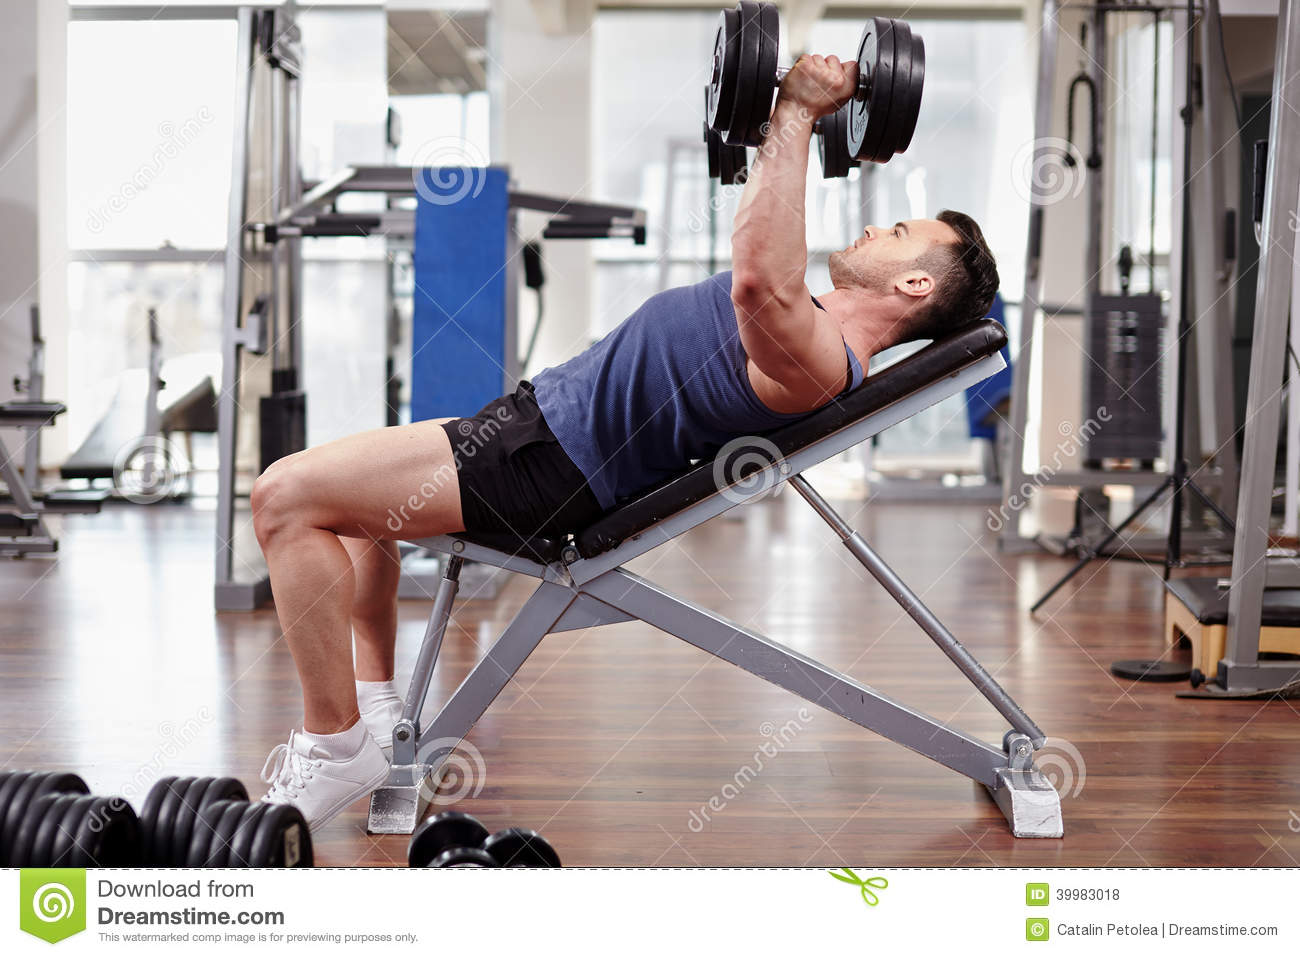 Chest Workout On Bench Press Stock Photo - Image of leisure